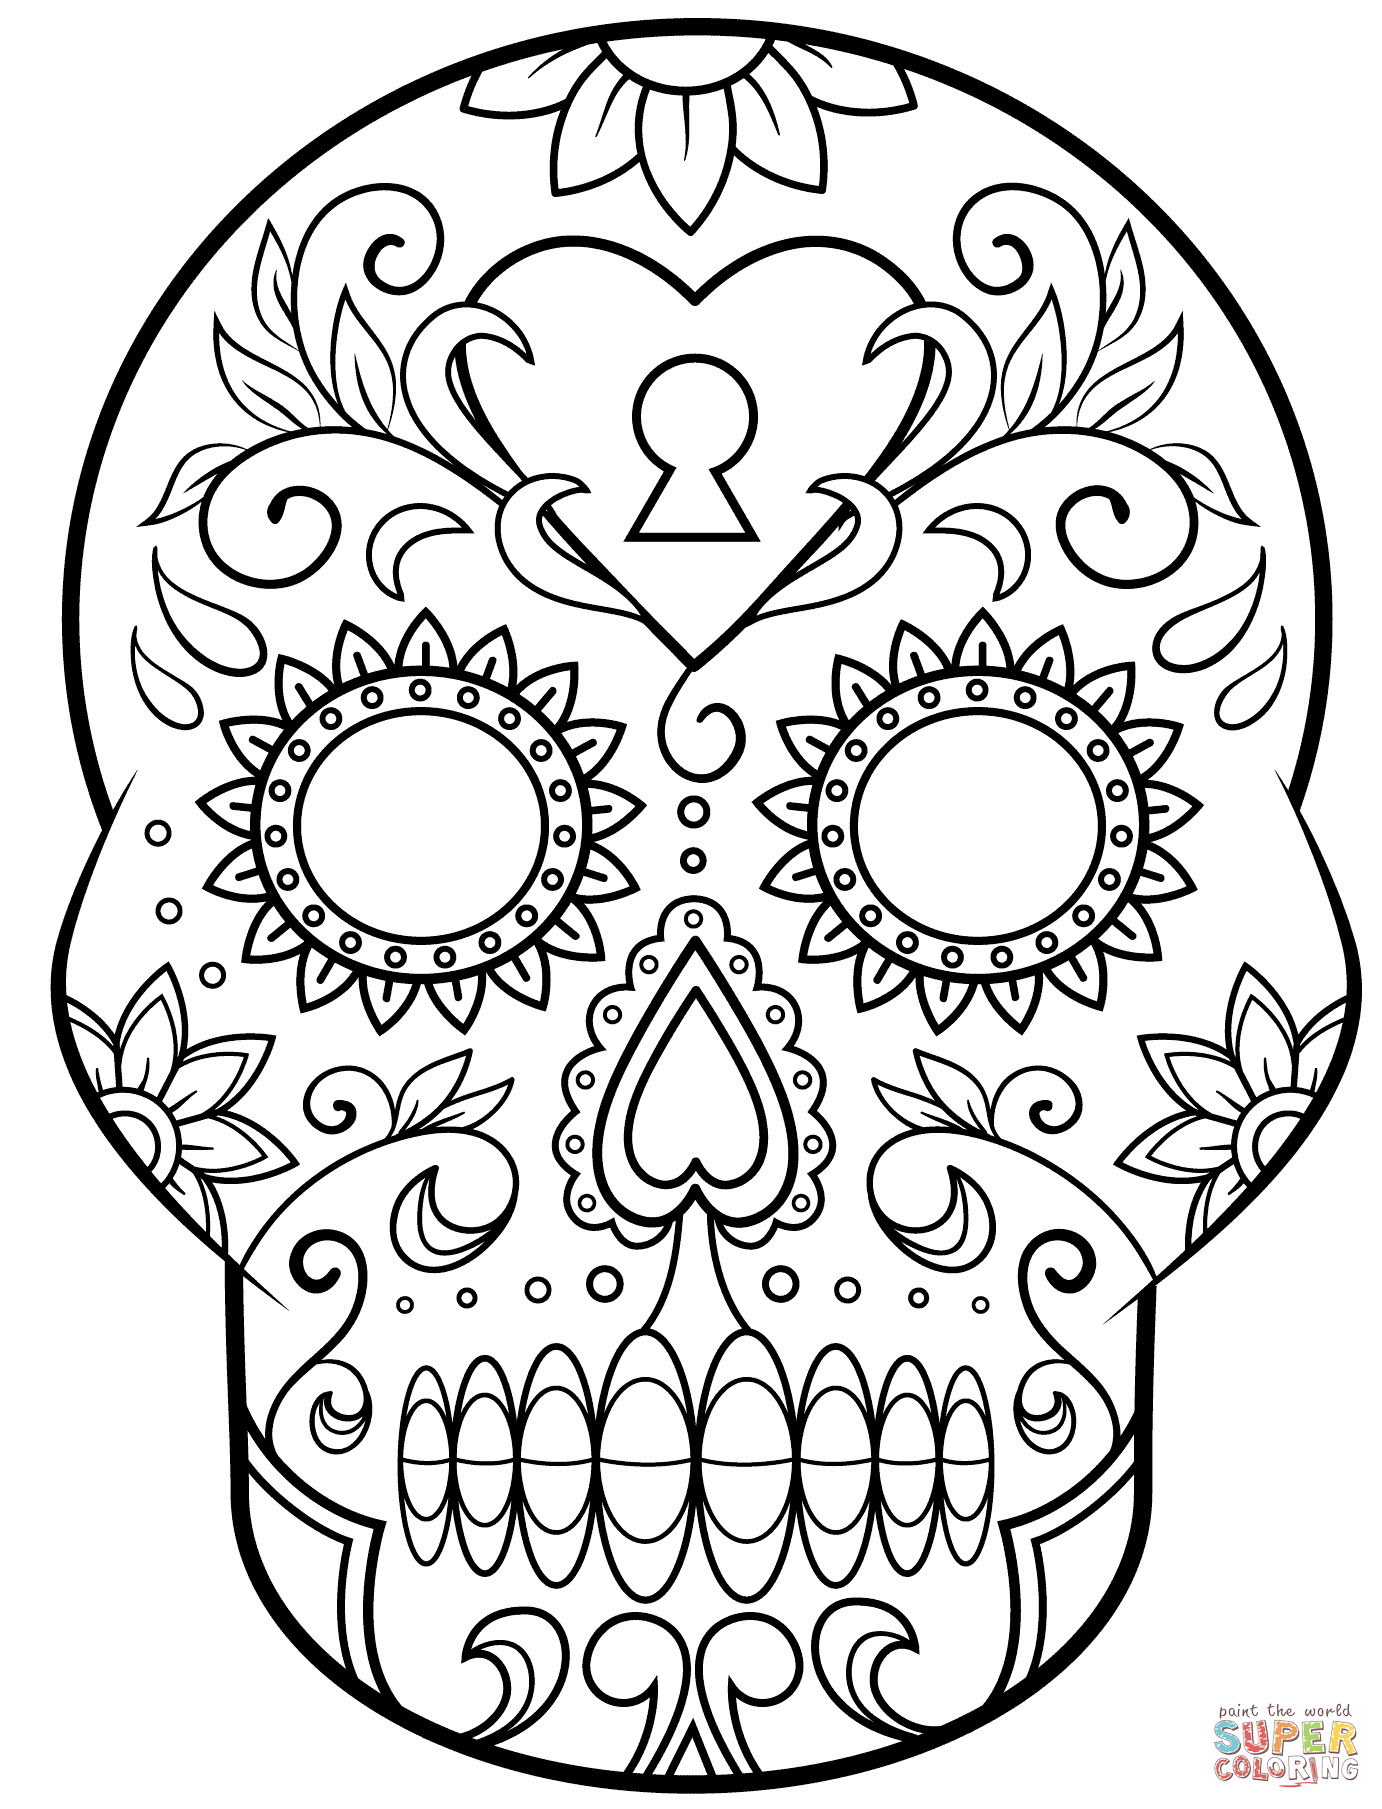 Skull Color Pages Day Of The Dead Sugar Skull Coloring Page Free Printable Coloring